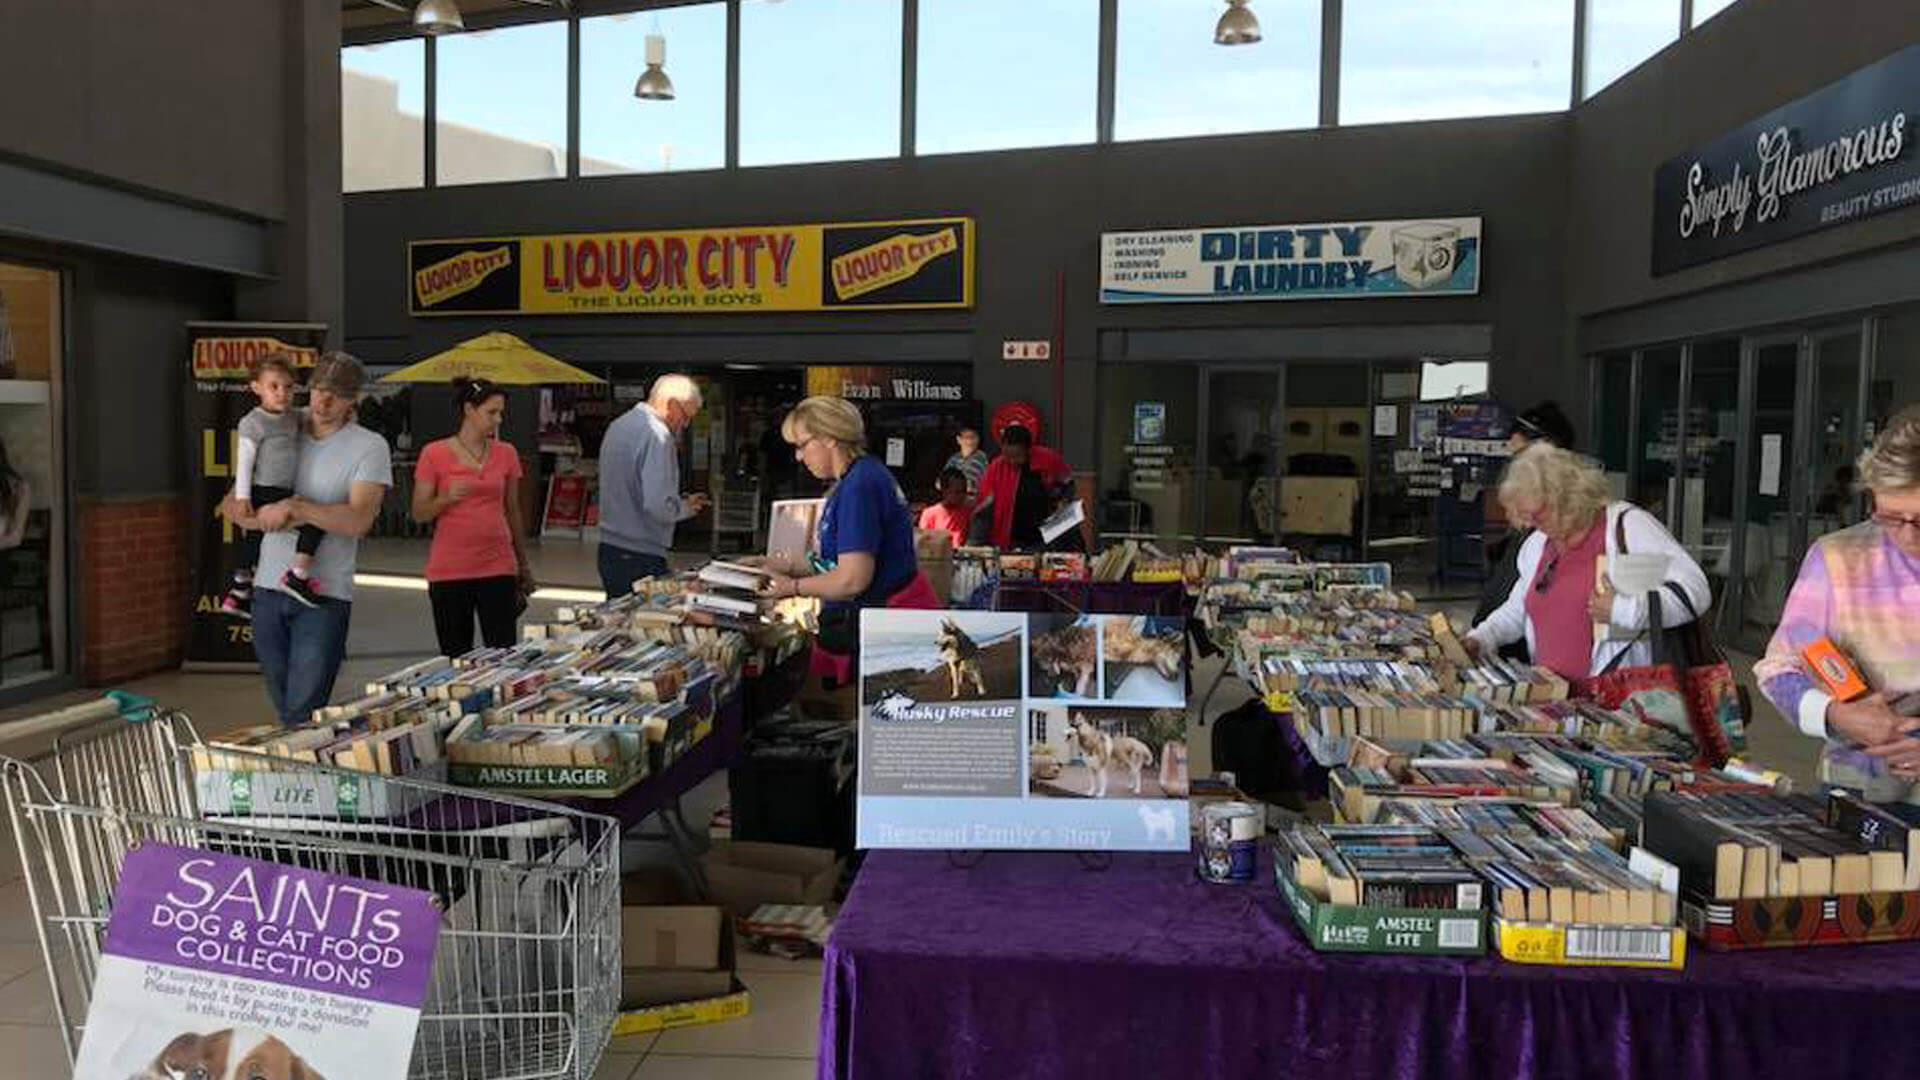 Saints Book Sale